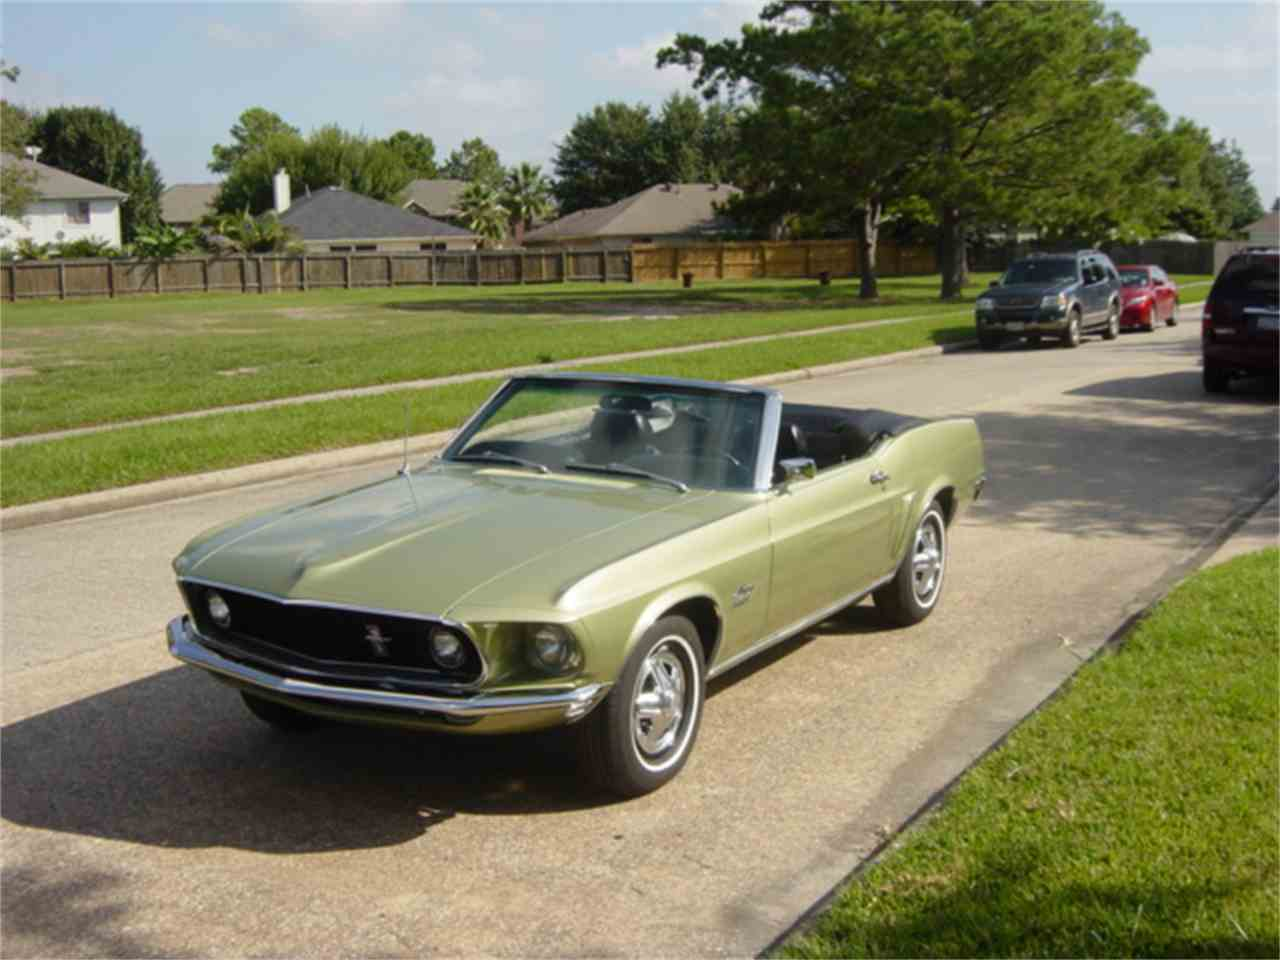 Classic Cars For Sale Houston Area: 1969 Ford Mustang For Sale